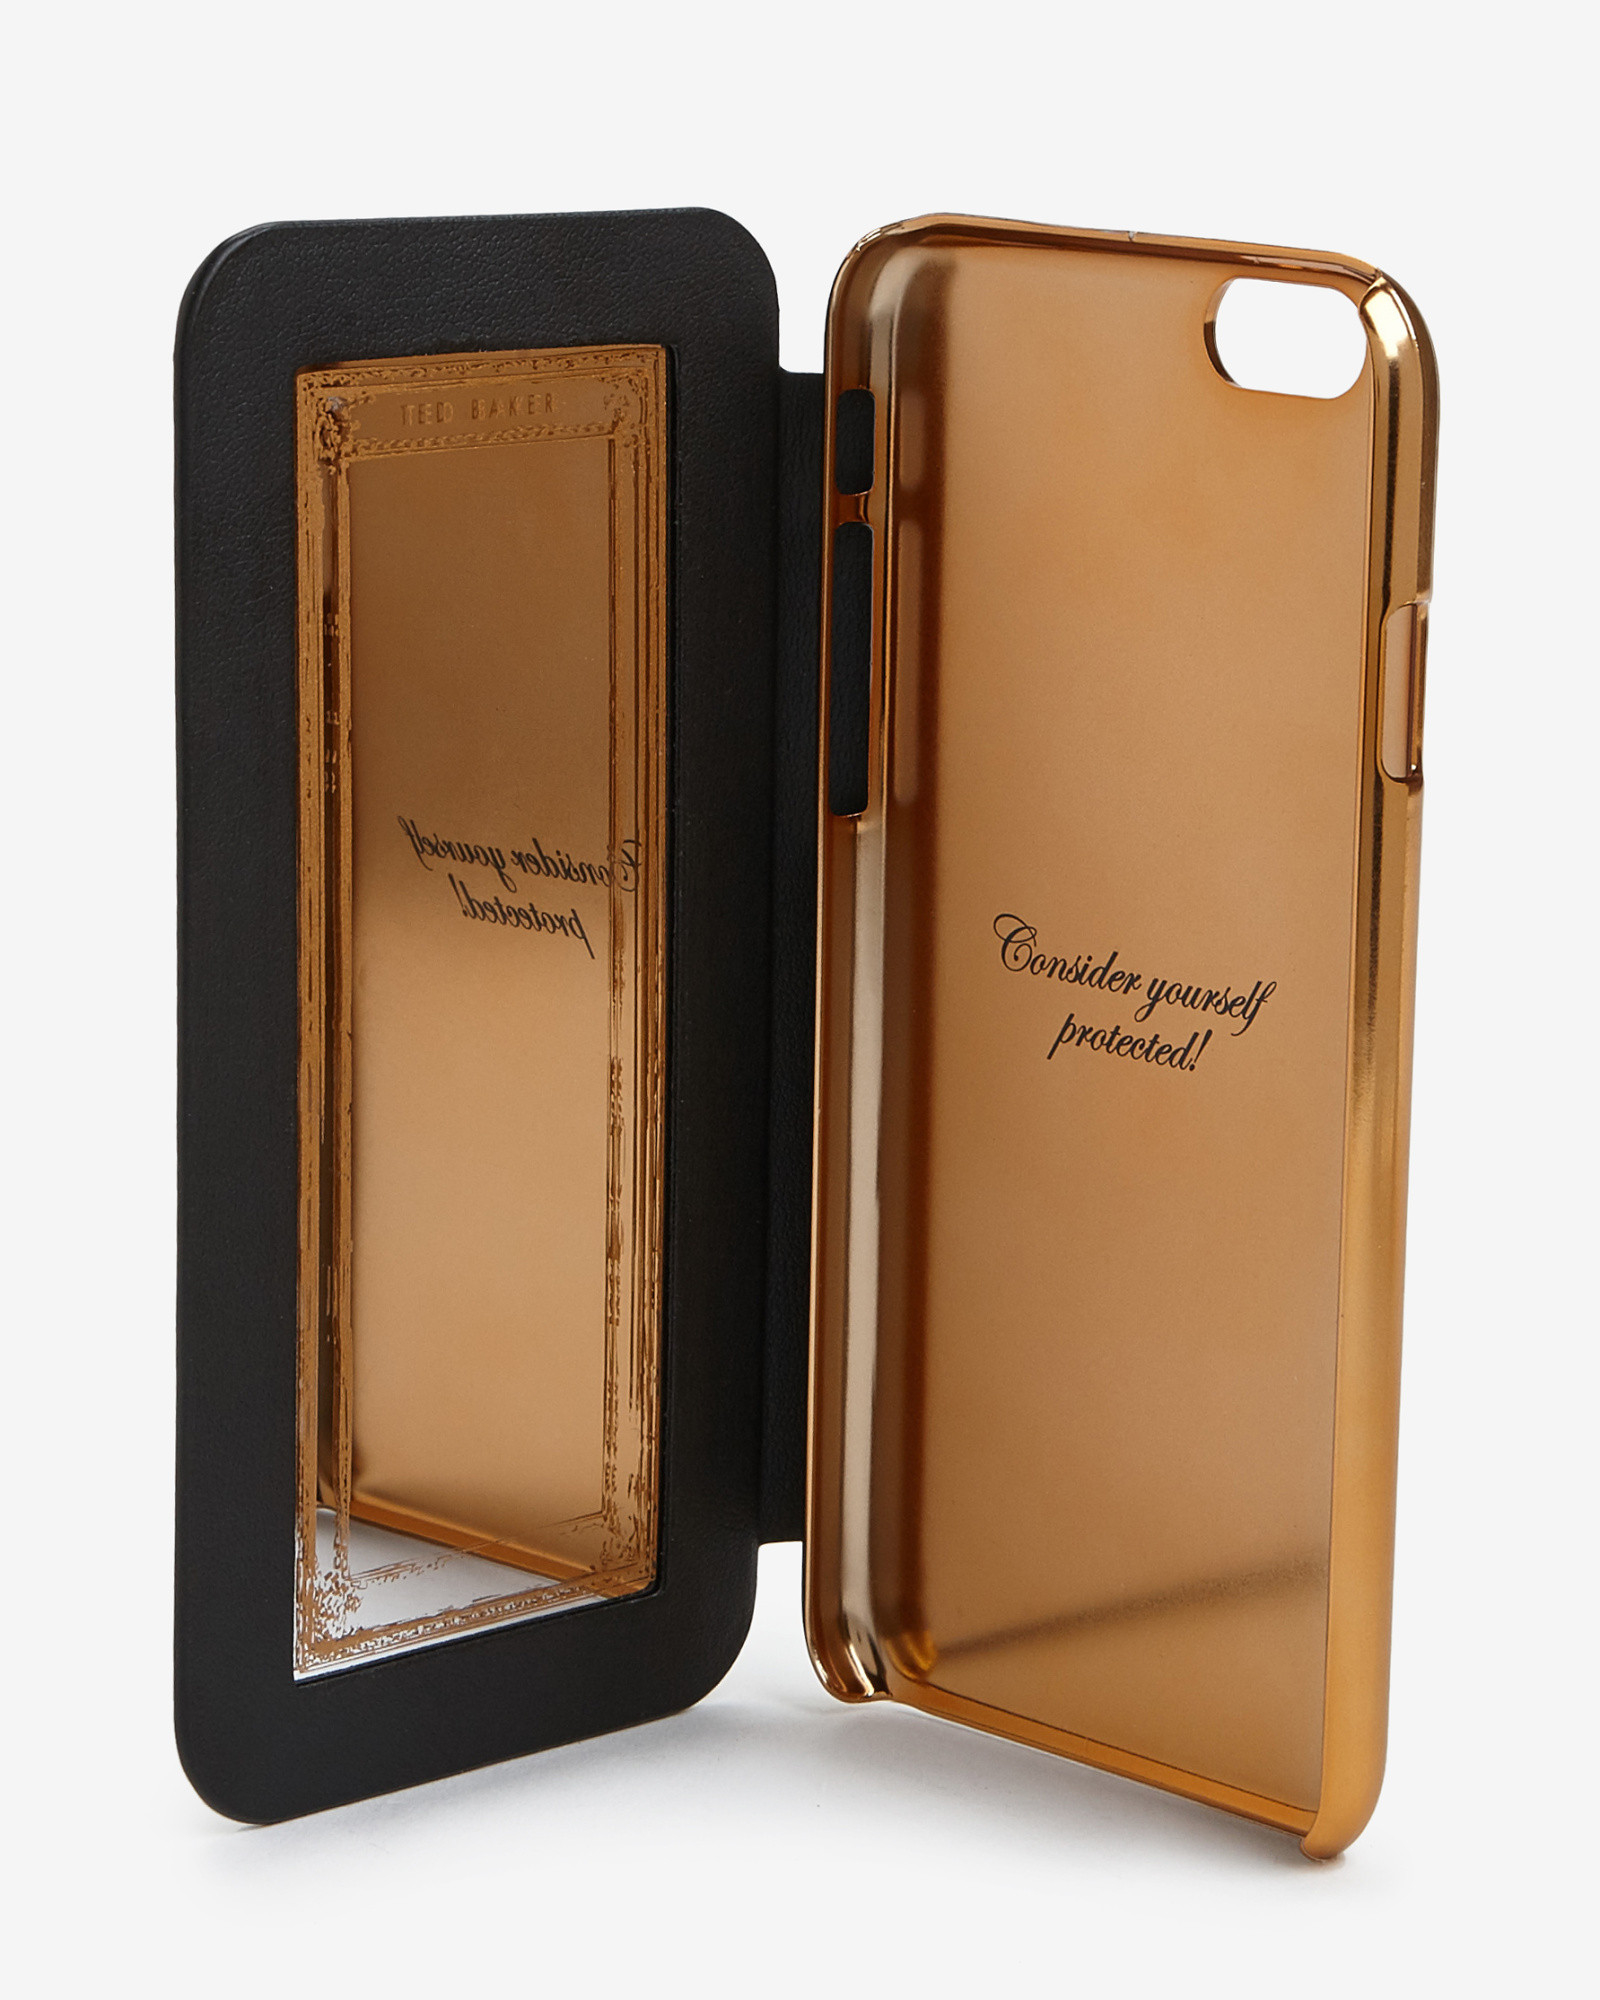 iphone 6 plus case ted baker